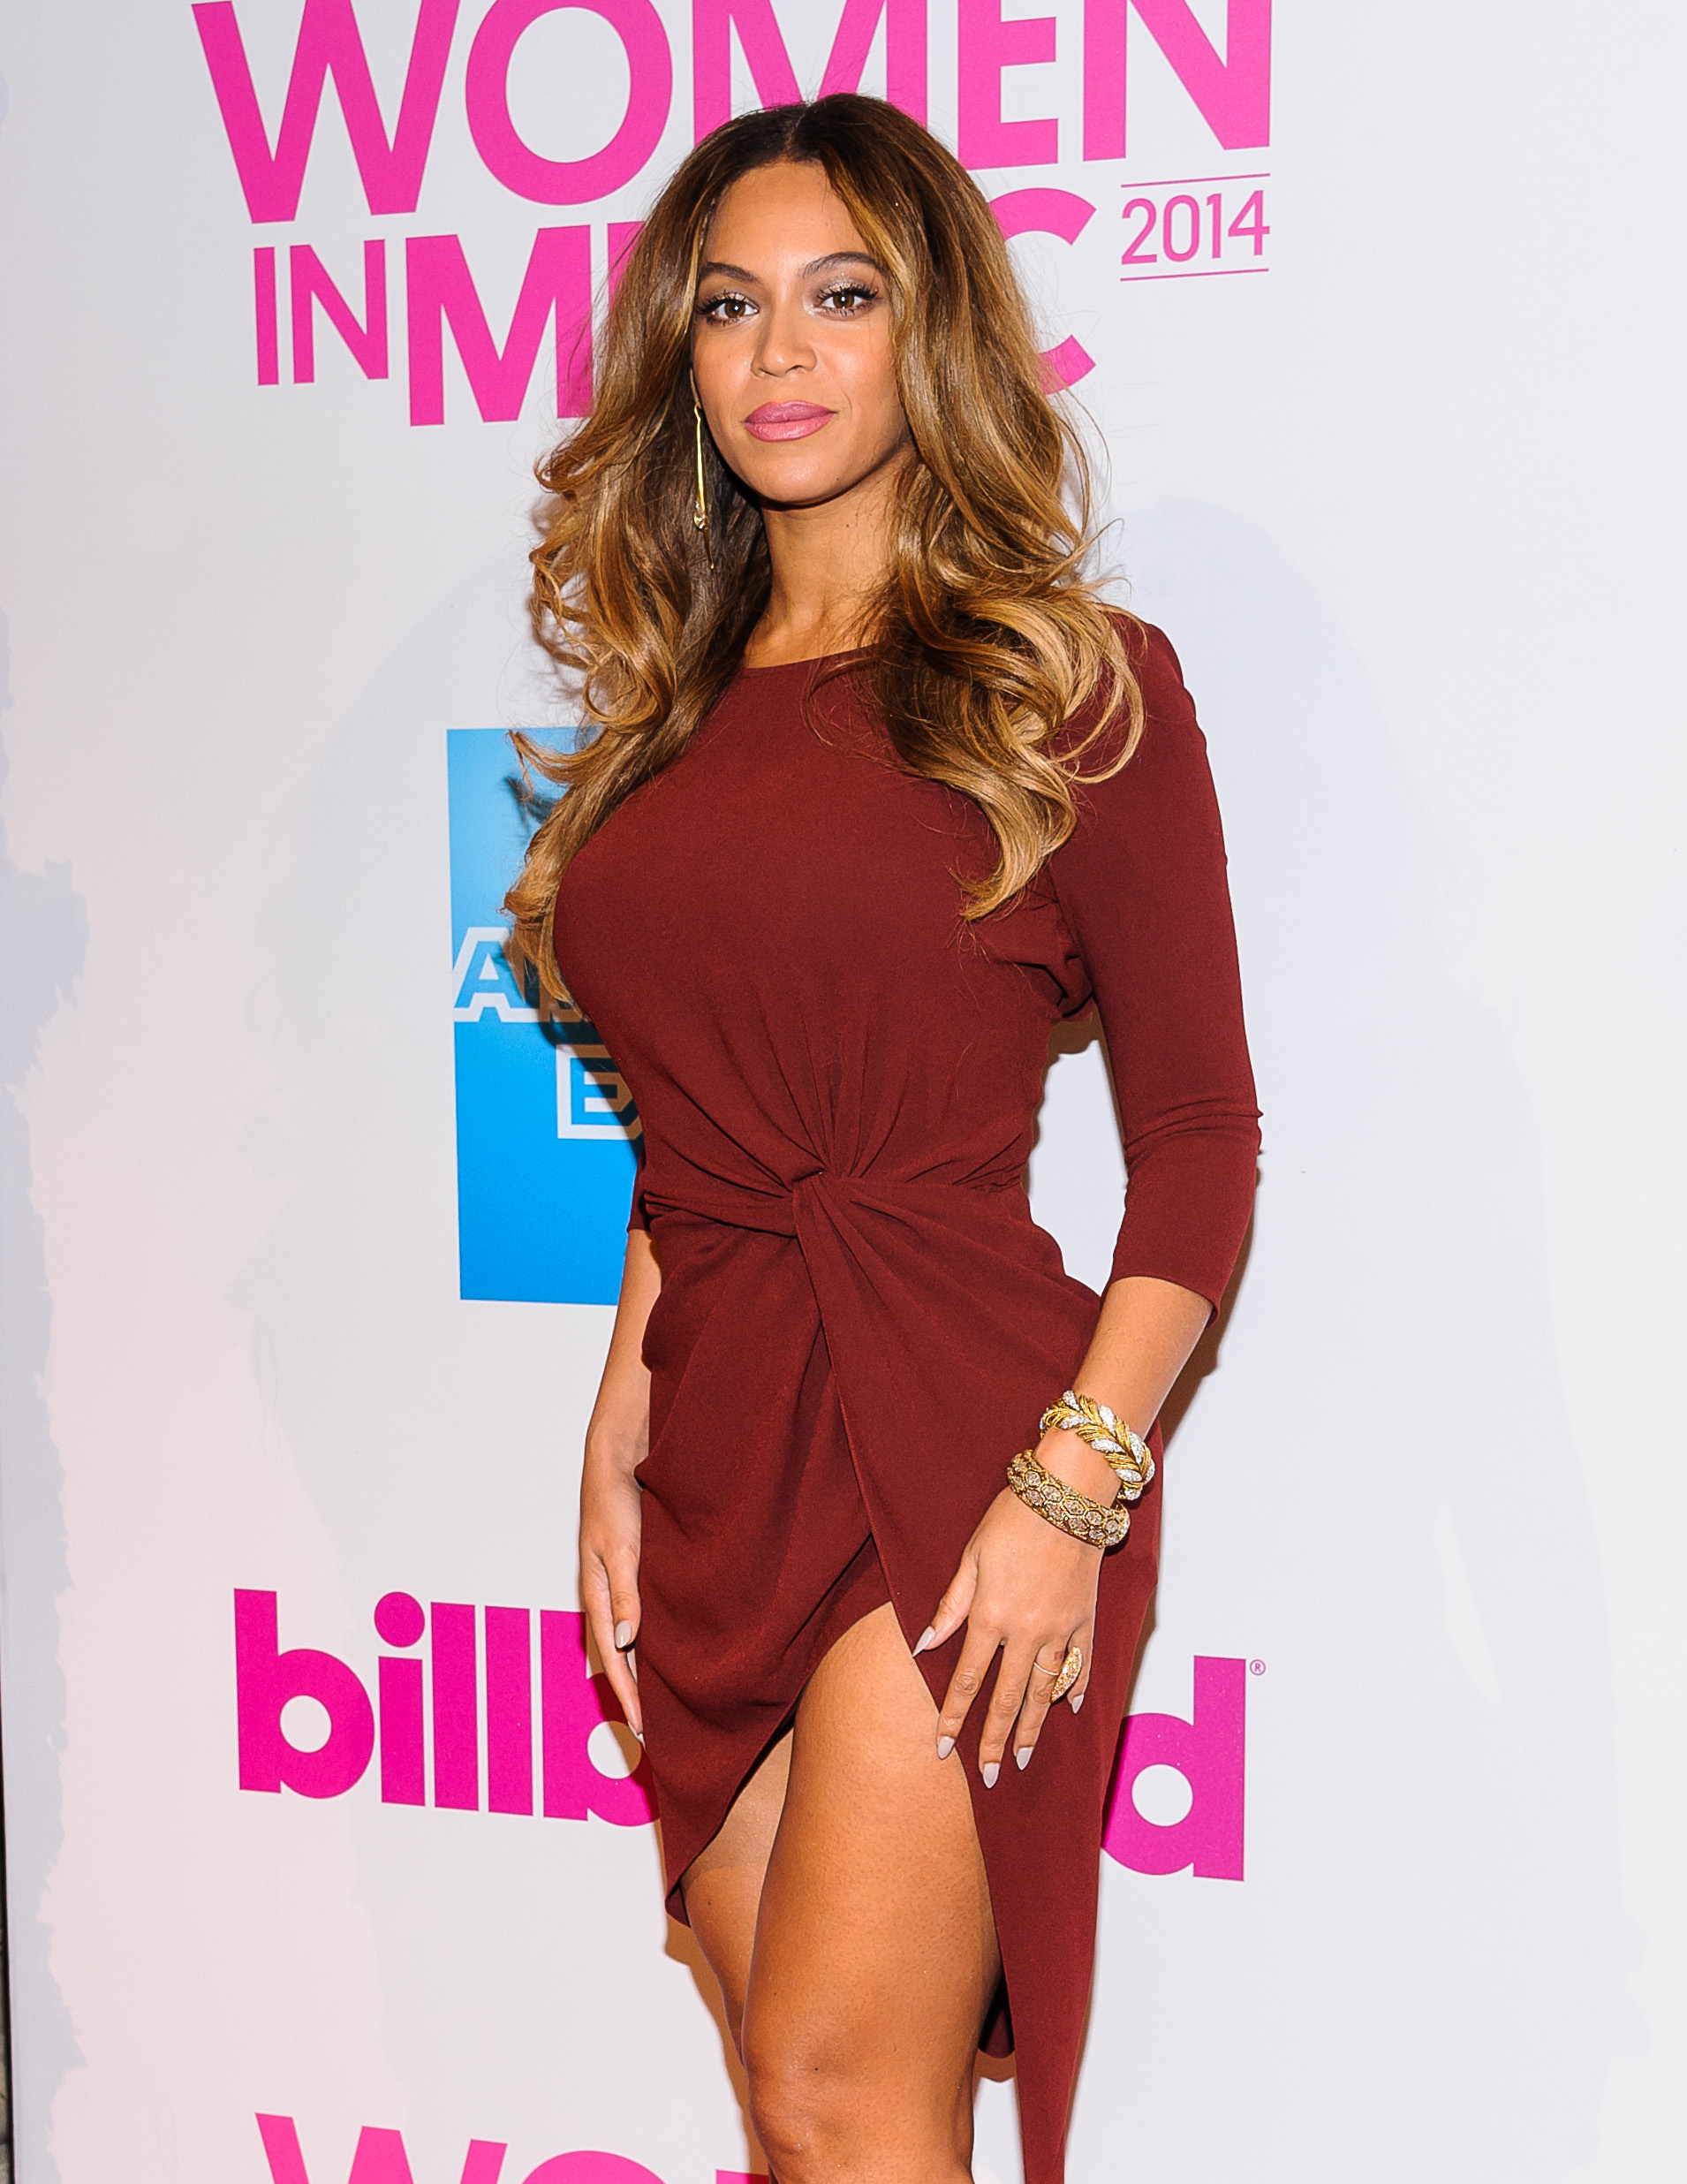 Beyonce at the Billboard Women in Music Luncheon 2014 at Cipriani Wall Street (C.Smith/ WENN.com)